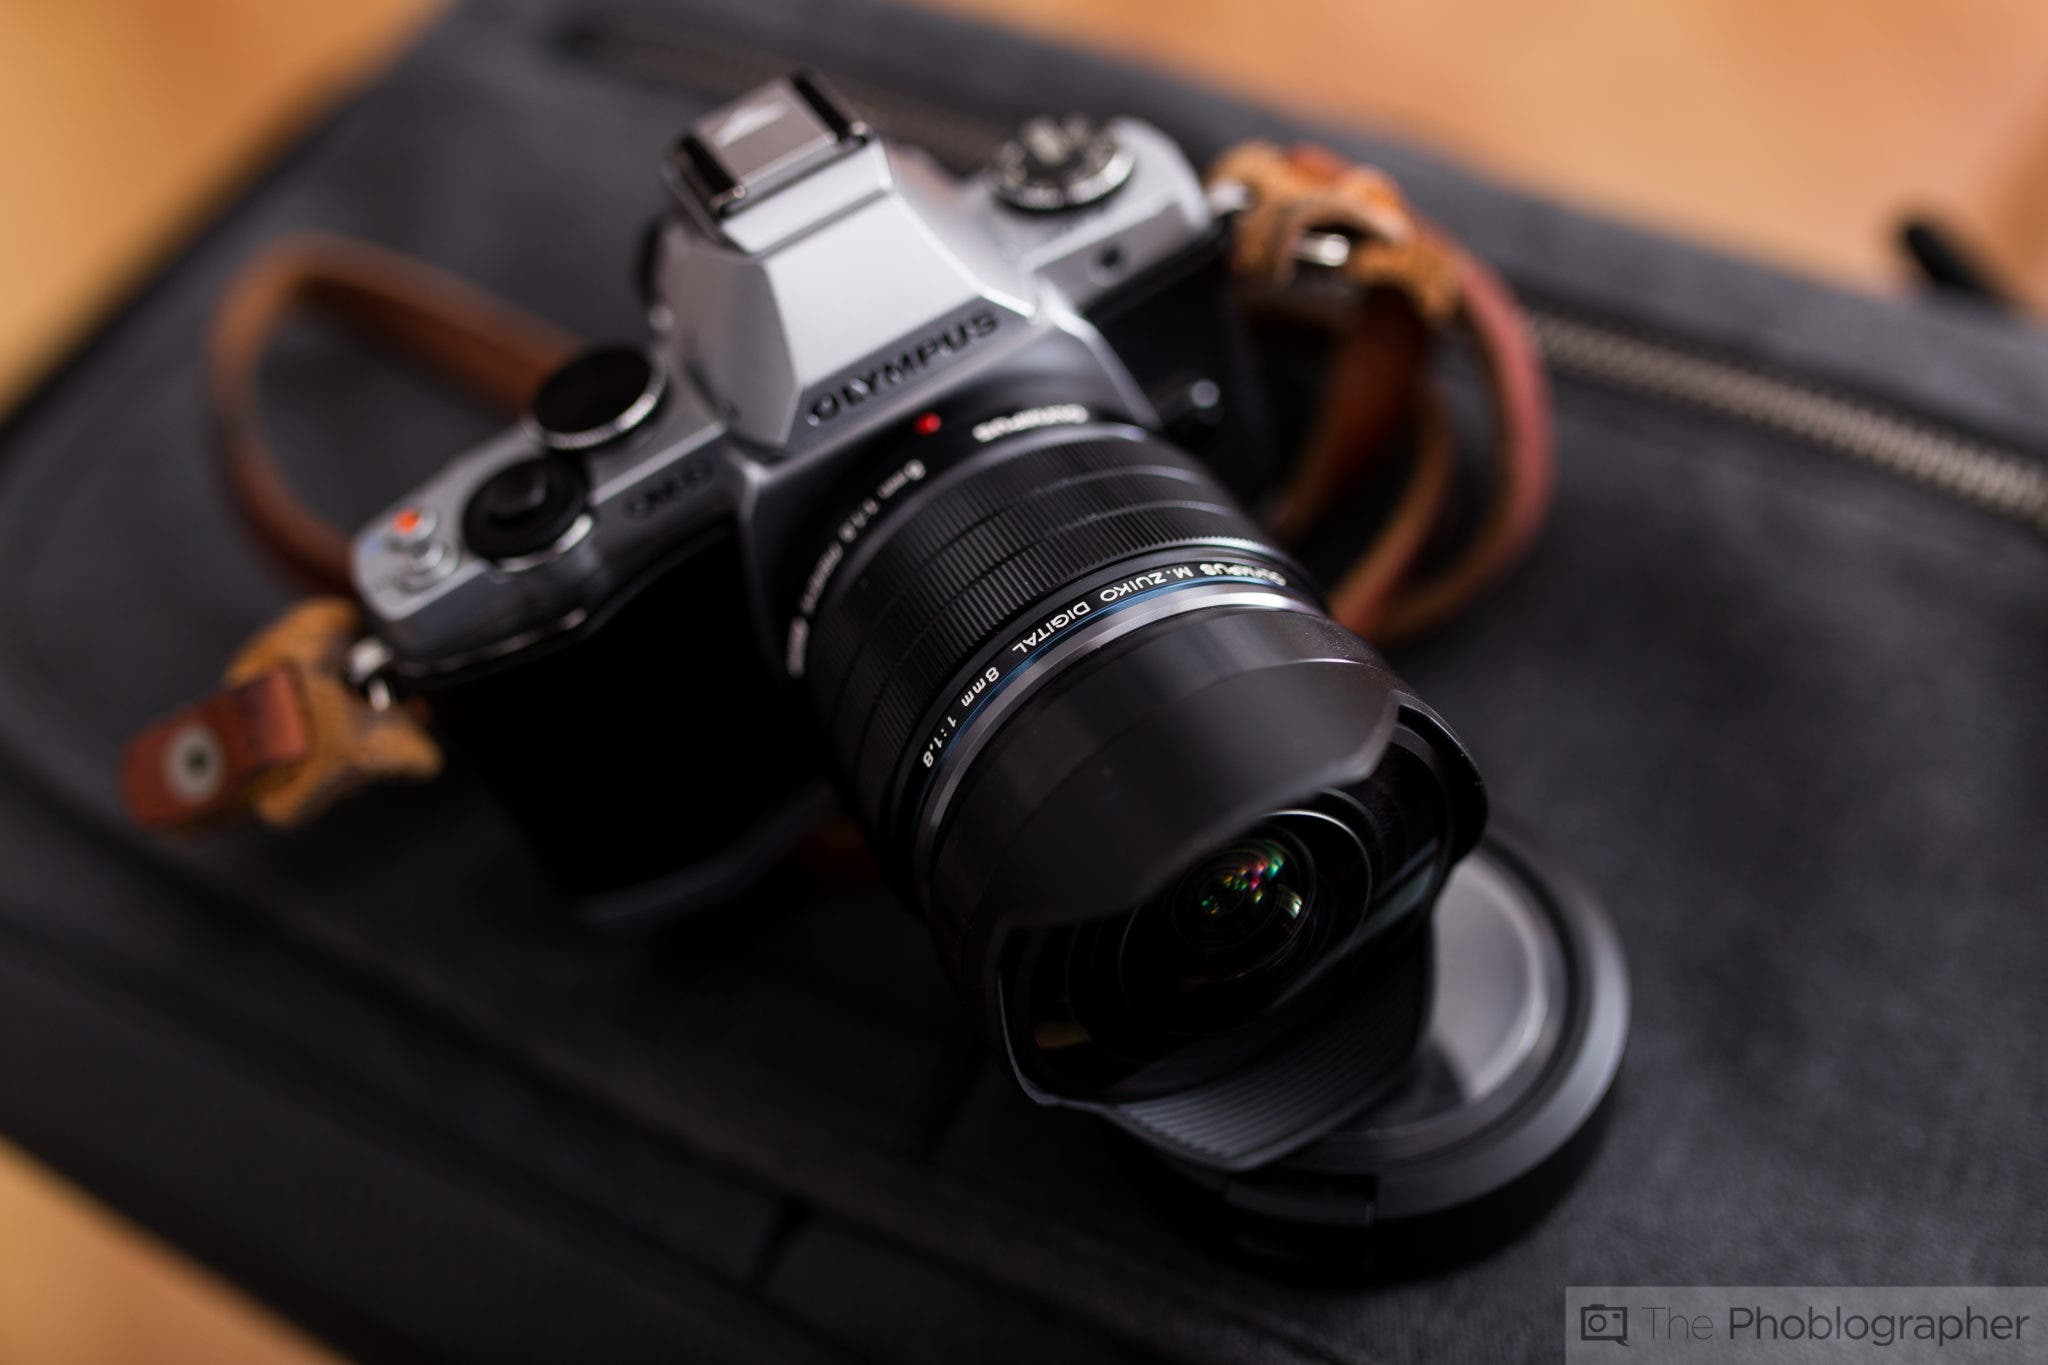 Review: Olympus 8mm f1.8 PRO Fisheye (Micro Four Thirds)